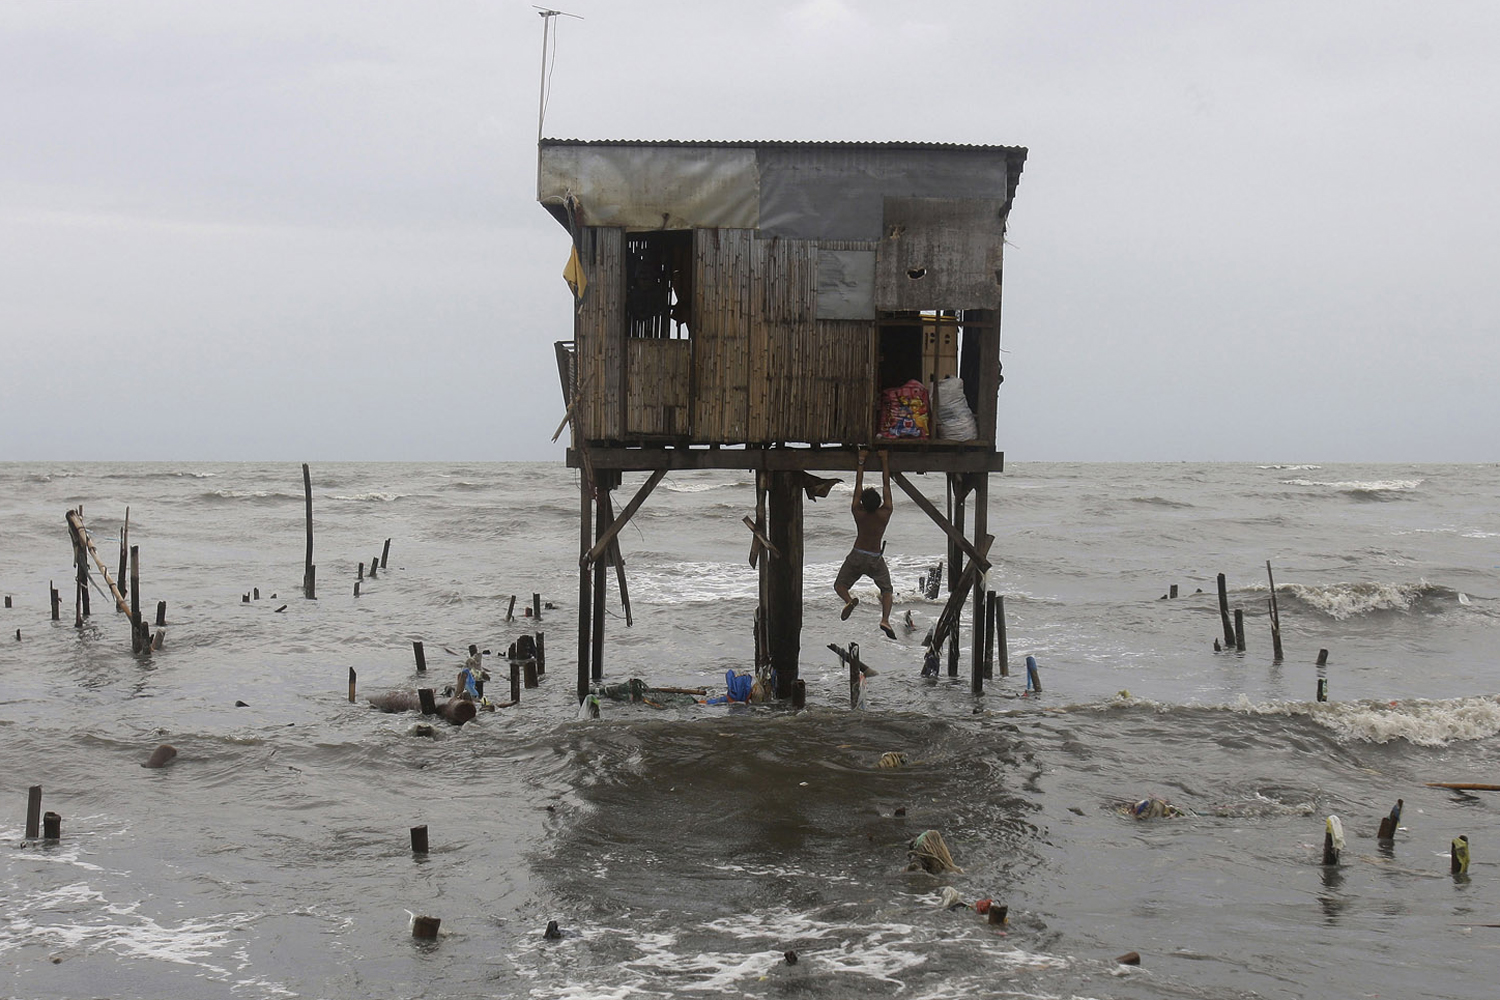 September 28, 2011. A man hangs on to what remains of a house that was built on stilts as he tries to recover belongings after Typhoon Nesat wiped out most of his neighbors' homes along a coastal village in Navotas, north of Manila, Philippines. Emergency services and residents in the Philippine capital cleaned up and restored electricity after the powerful typhoon unleashed flood waters and fierce wind that sent huge waves crashing over seawalls.